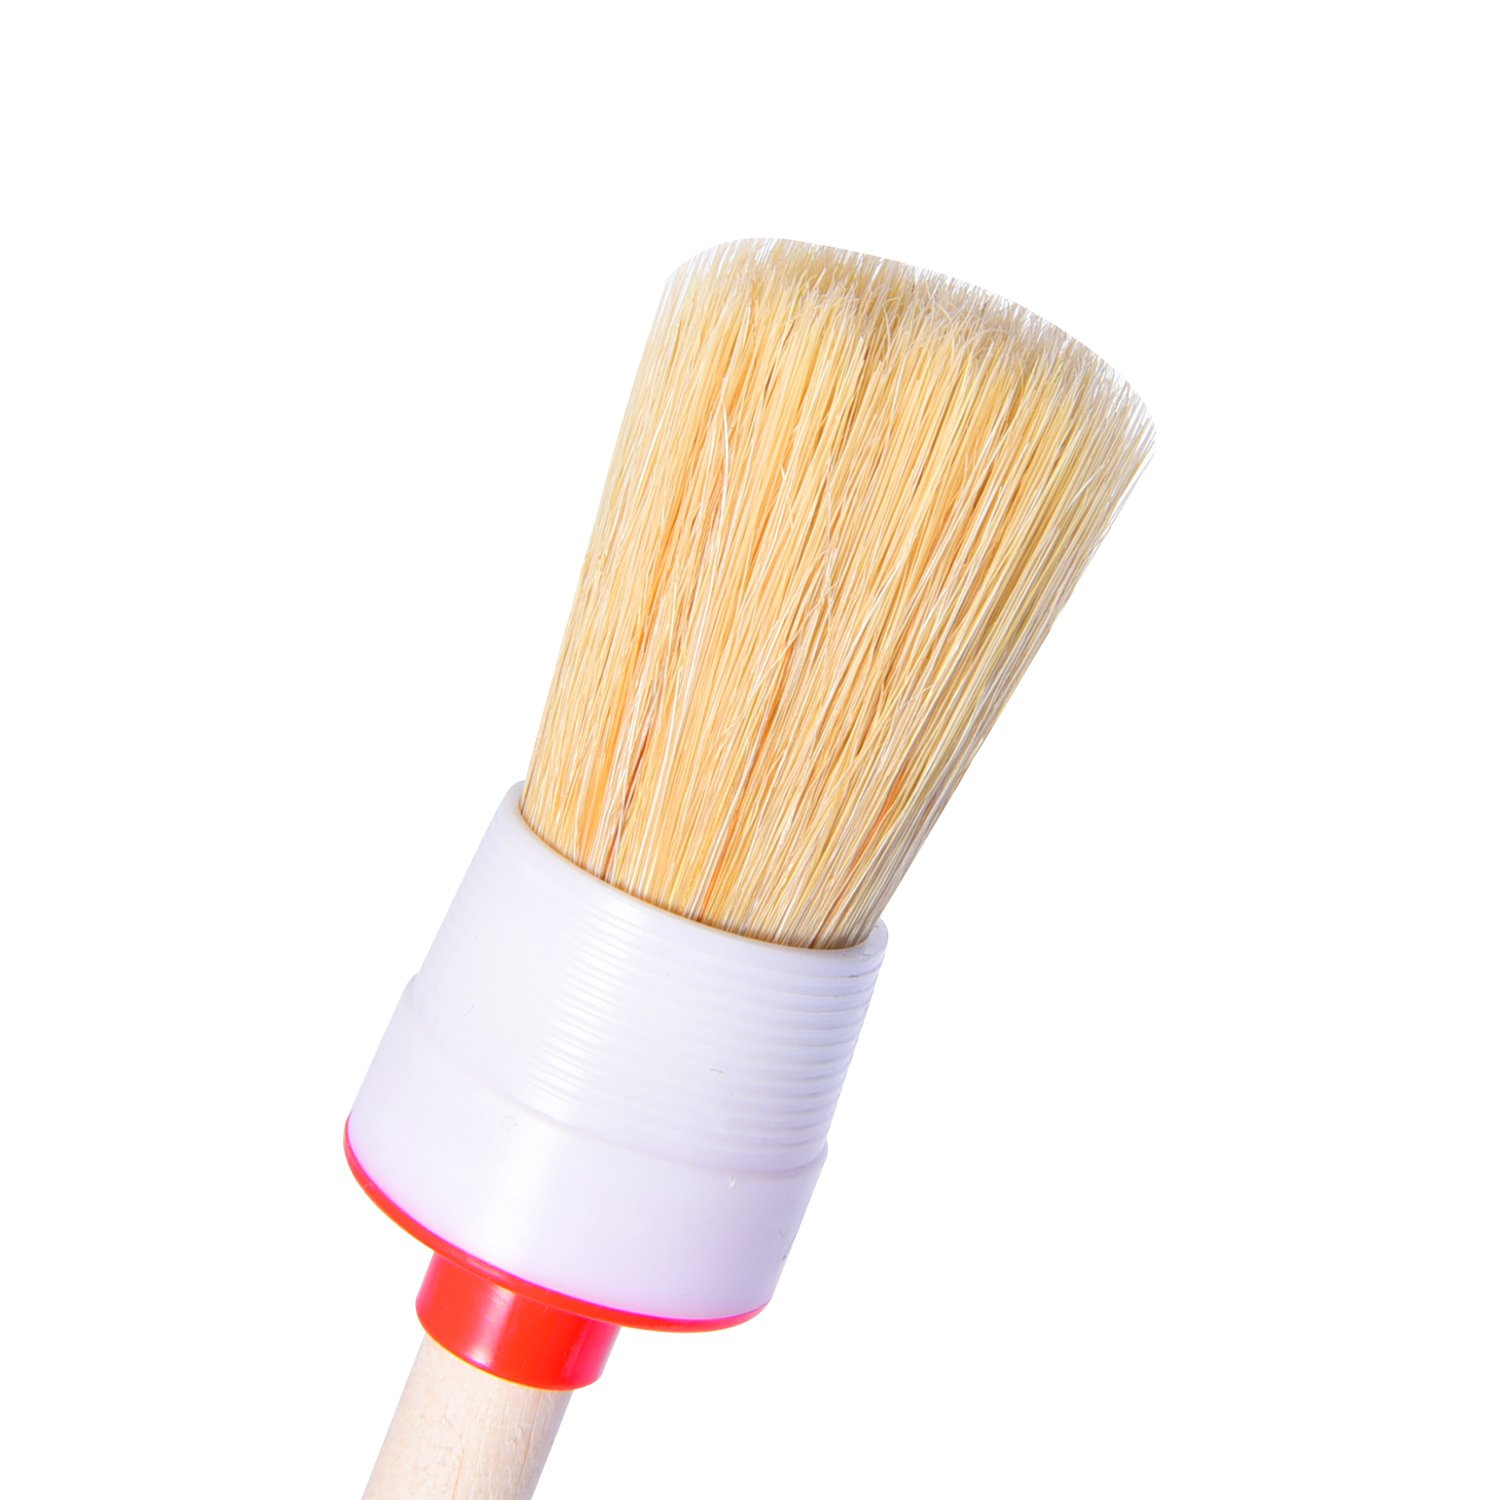 Image 5 - 6 Pieces Detail Brushes Cleaning Brushes Soft Hair Bristles Brush For Car Cleaning Dashboard Interior Exterior Leather Air Vents-in Sponges, Cloths & Brushes from Automobiles & Motorcycles